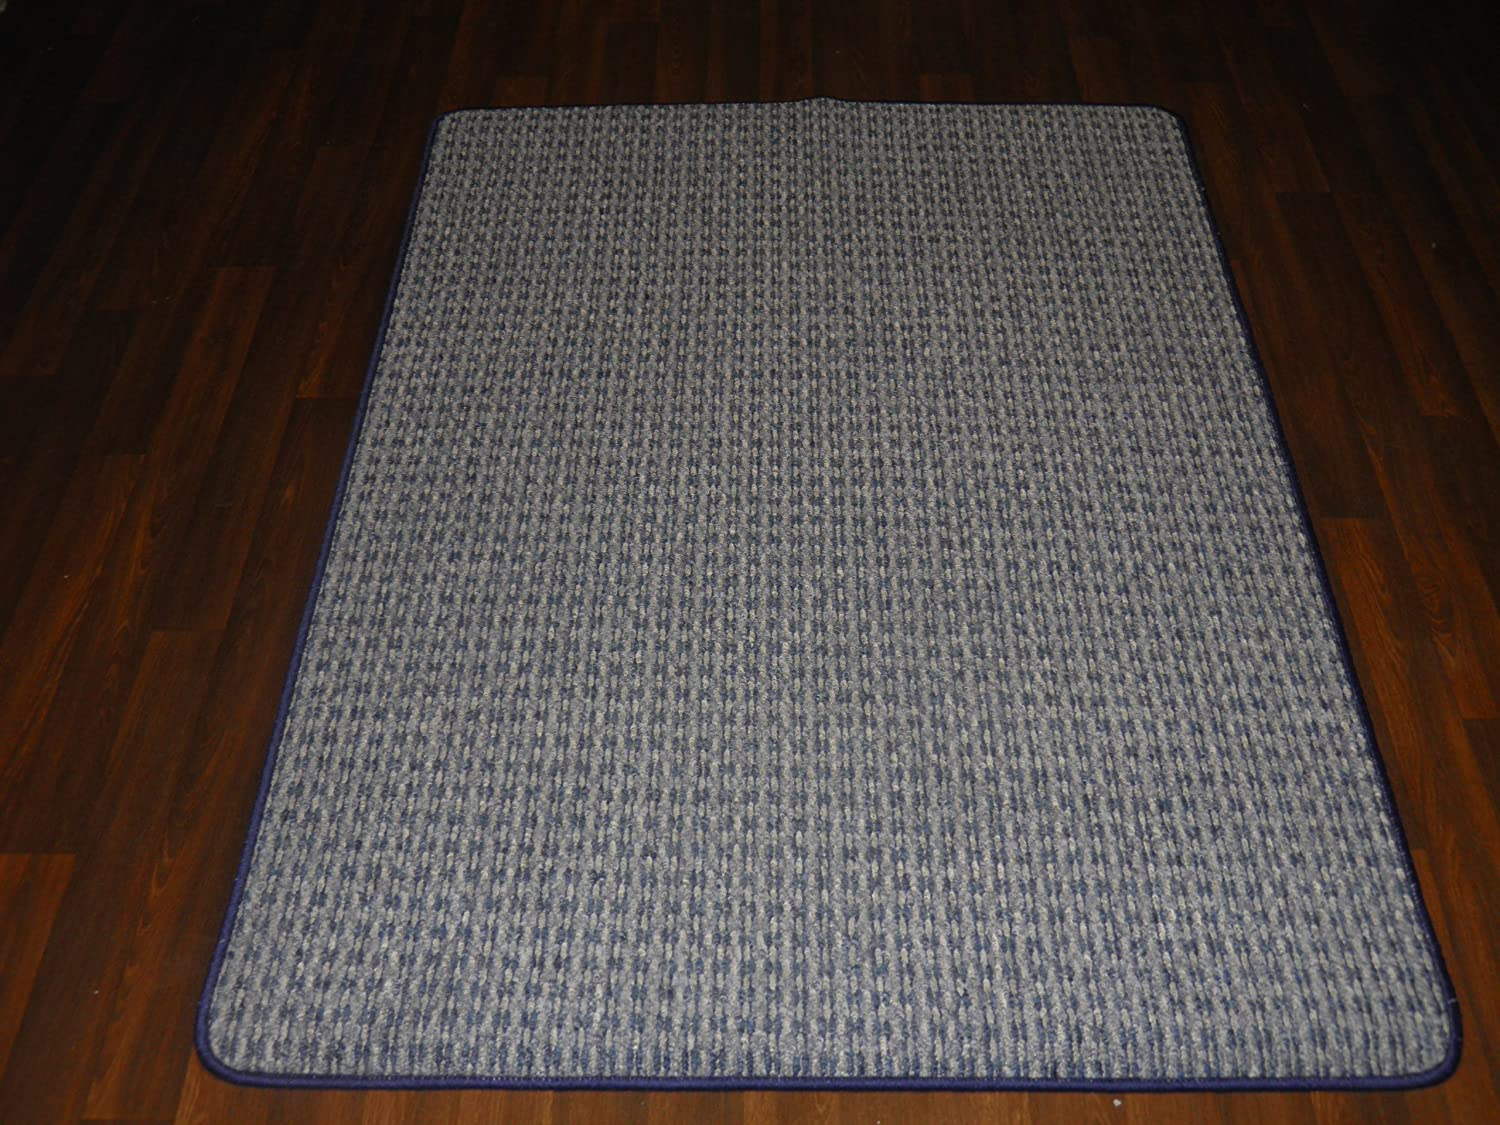 Non Slip Striped Washable Kitchen Utility Caravan Top Quality Runner And Door Mat Set 147cm x 89cm And 65cm x 48cm In Blue Rug